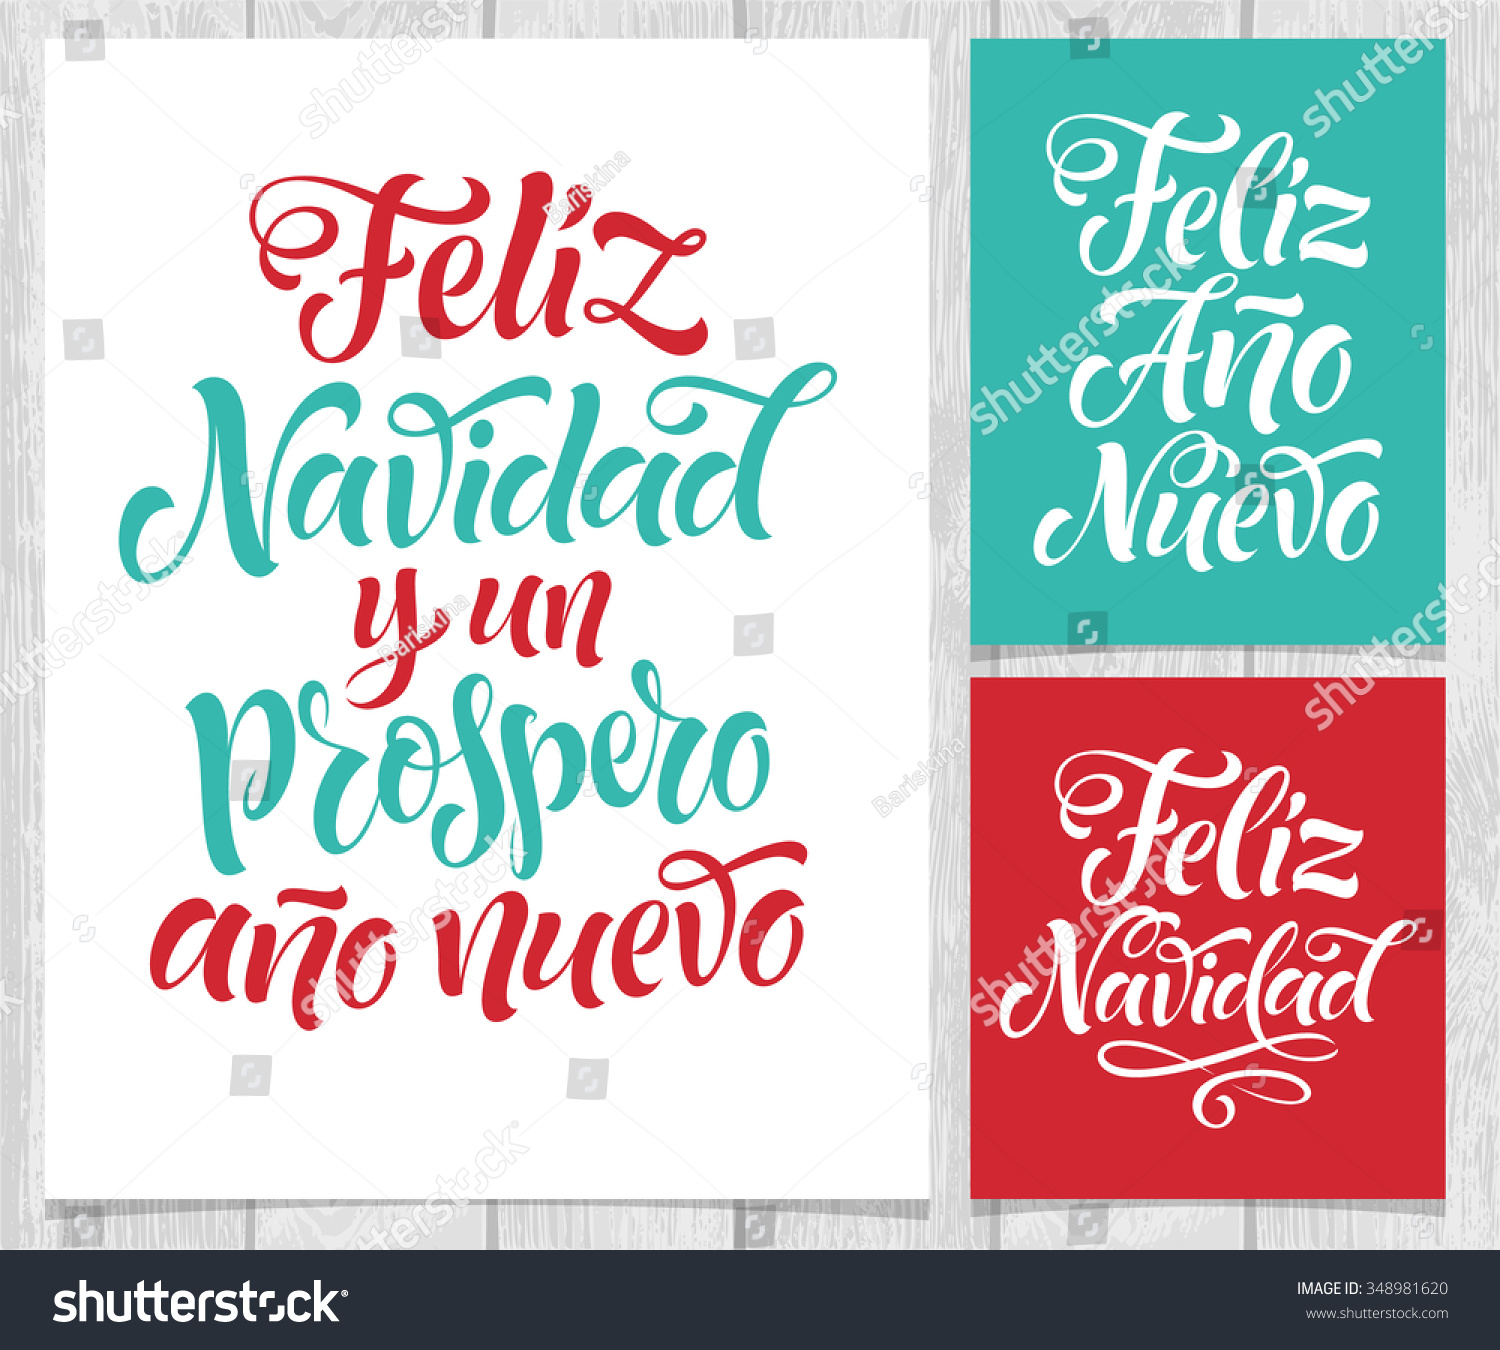 Royalty-free Vector Spanish christmas cards on wood… #348981620 ...